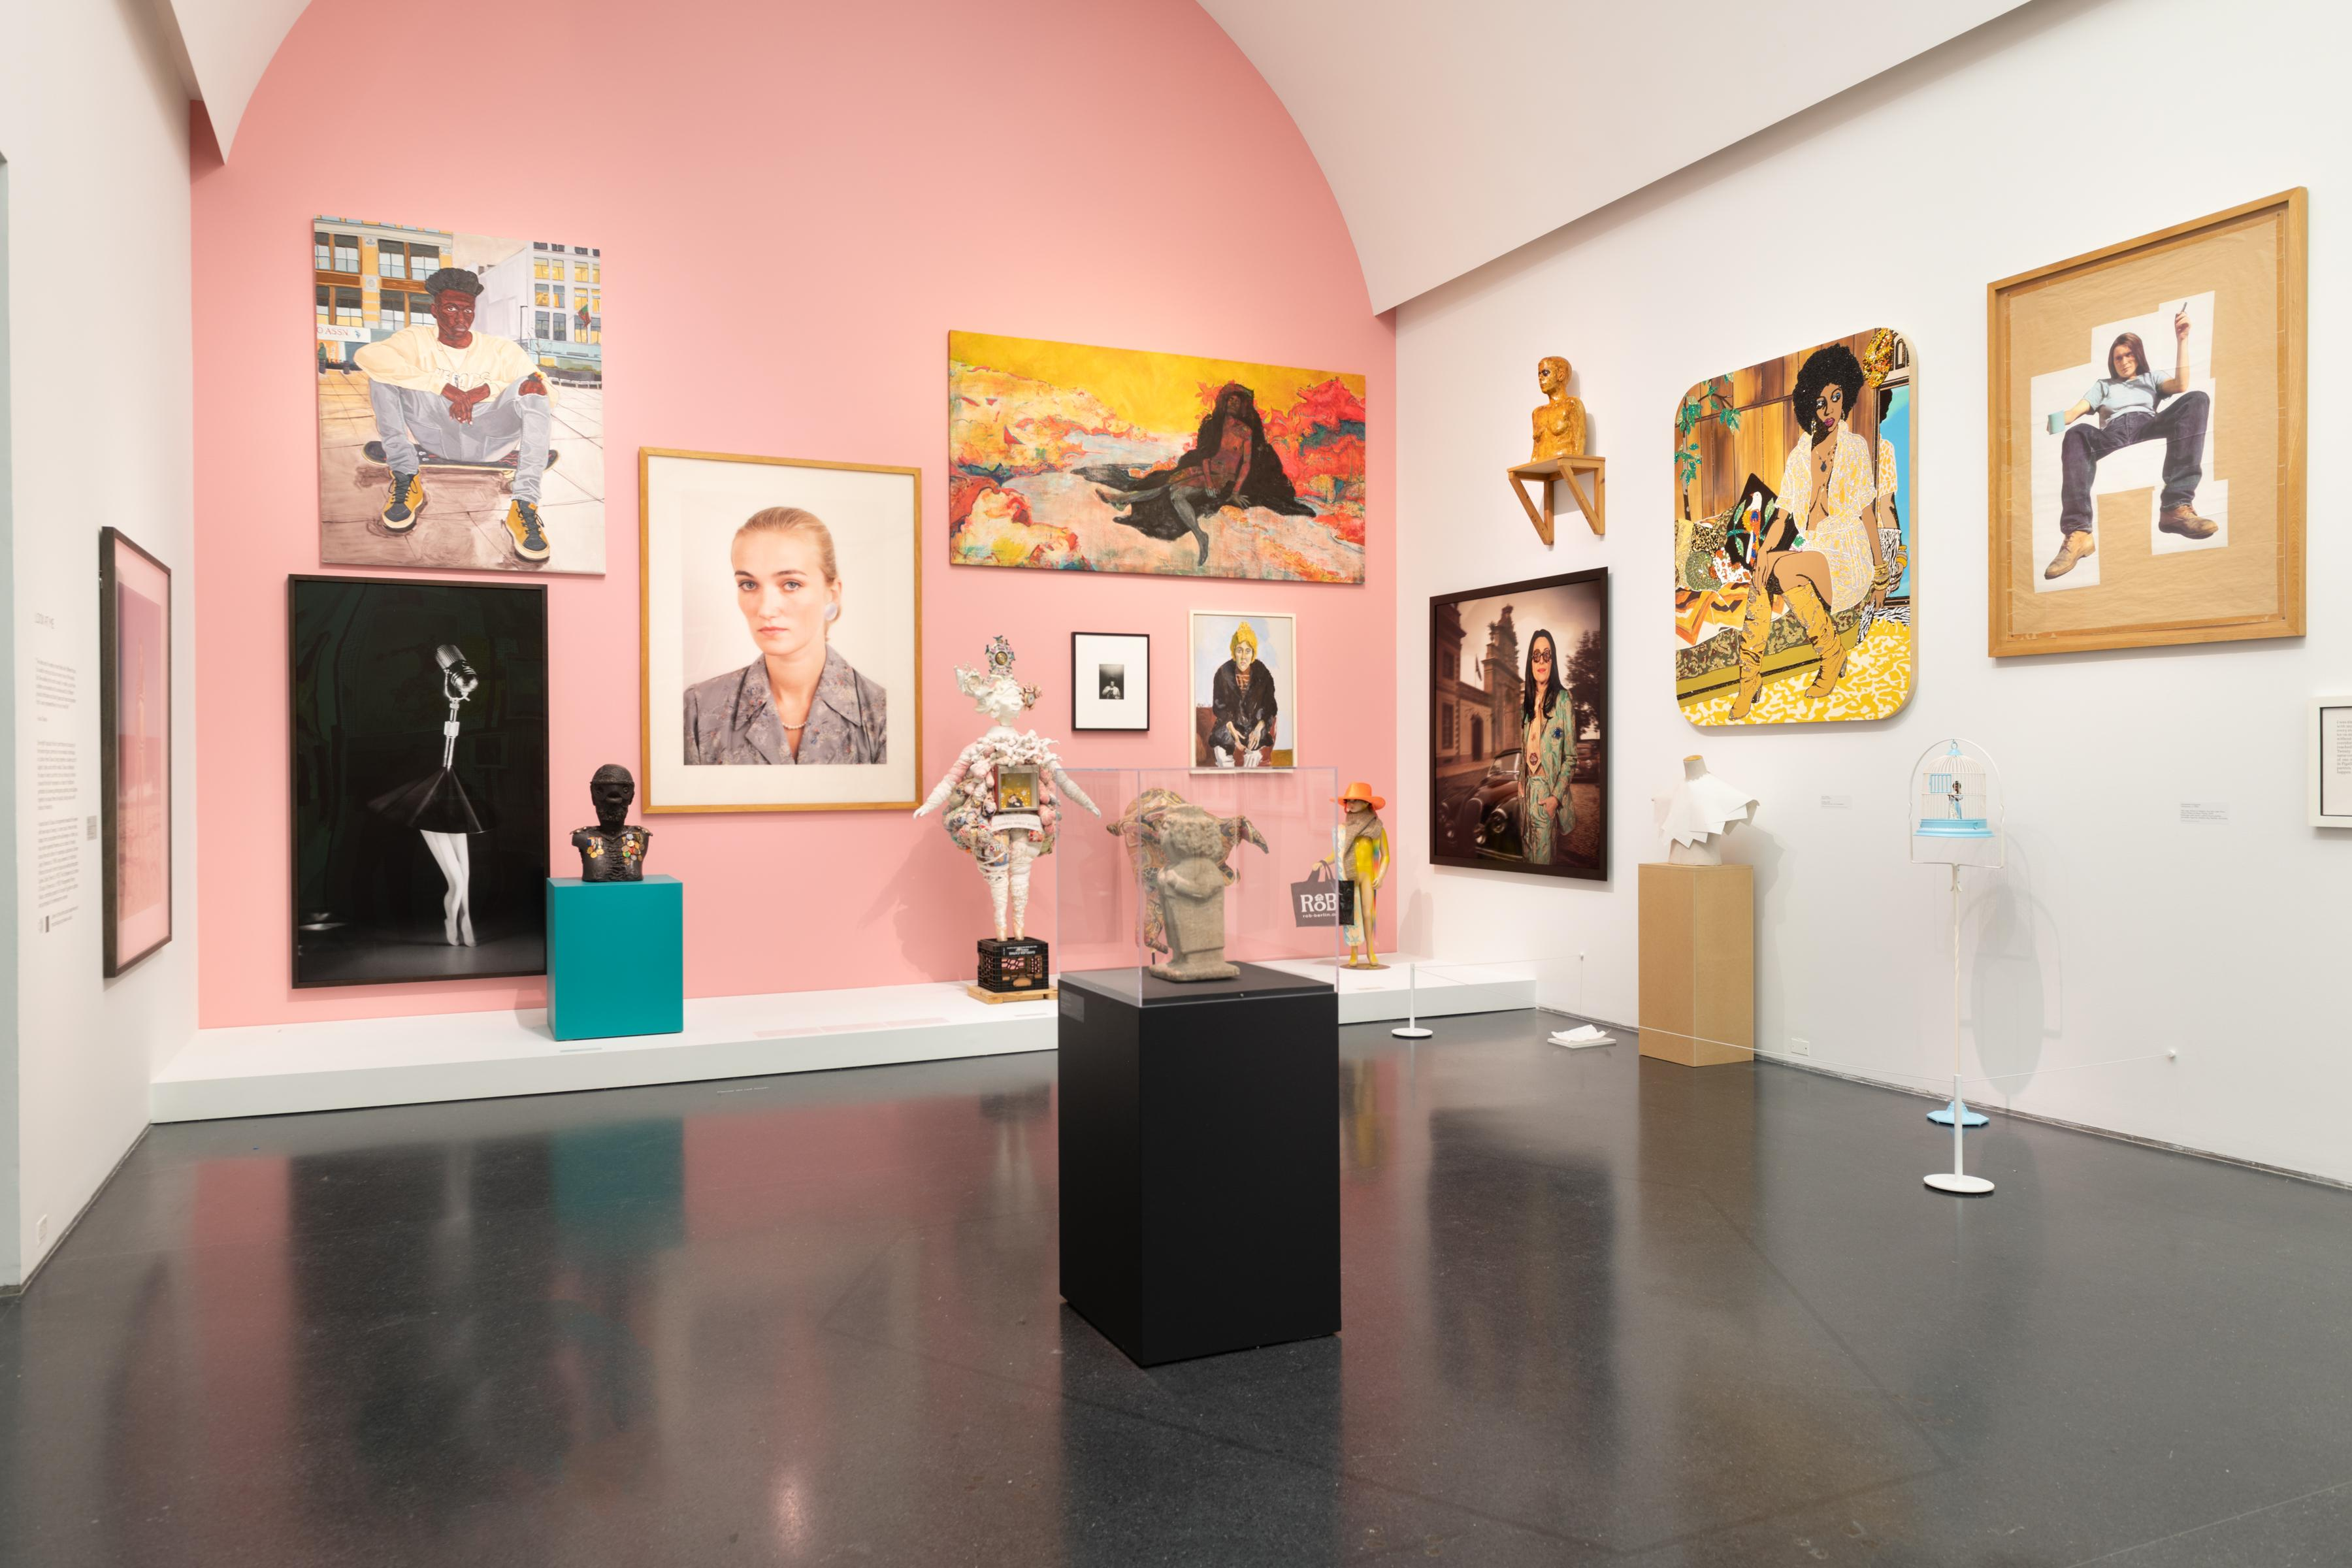 A pink, back wall is emphasized in a room with three walls shown. There are various paintings, photos and sculptures throughout the room.